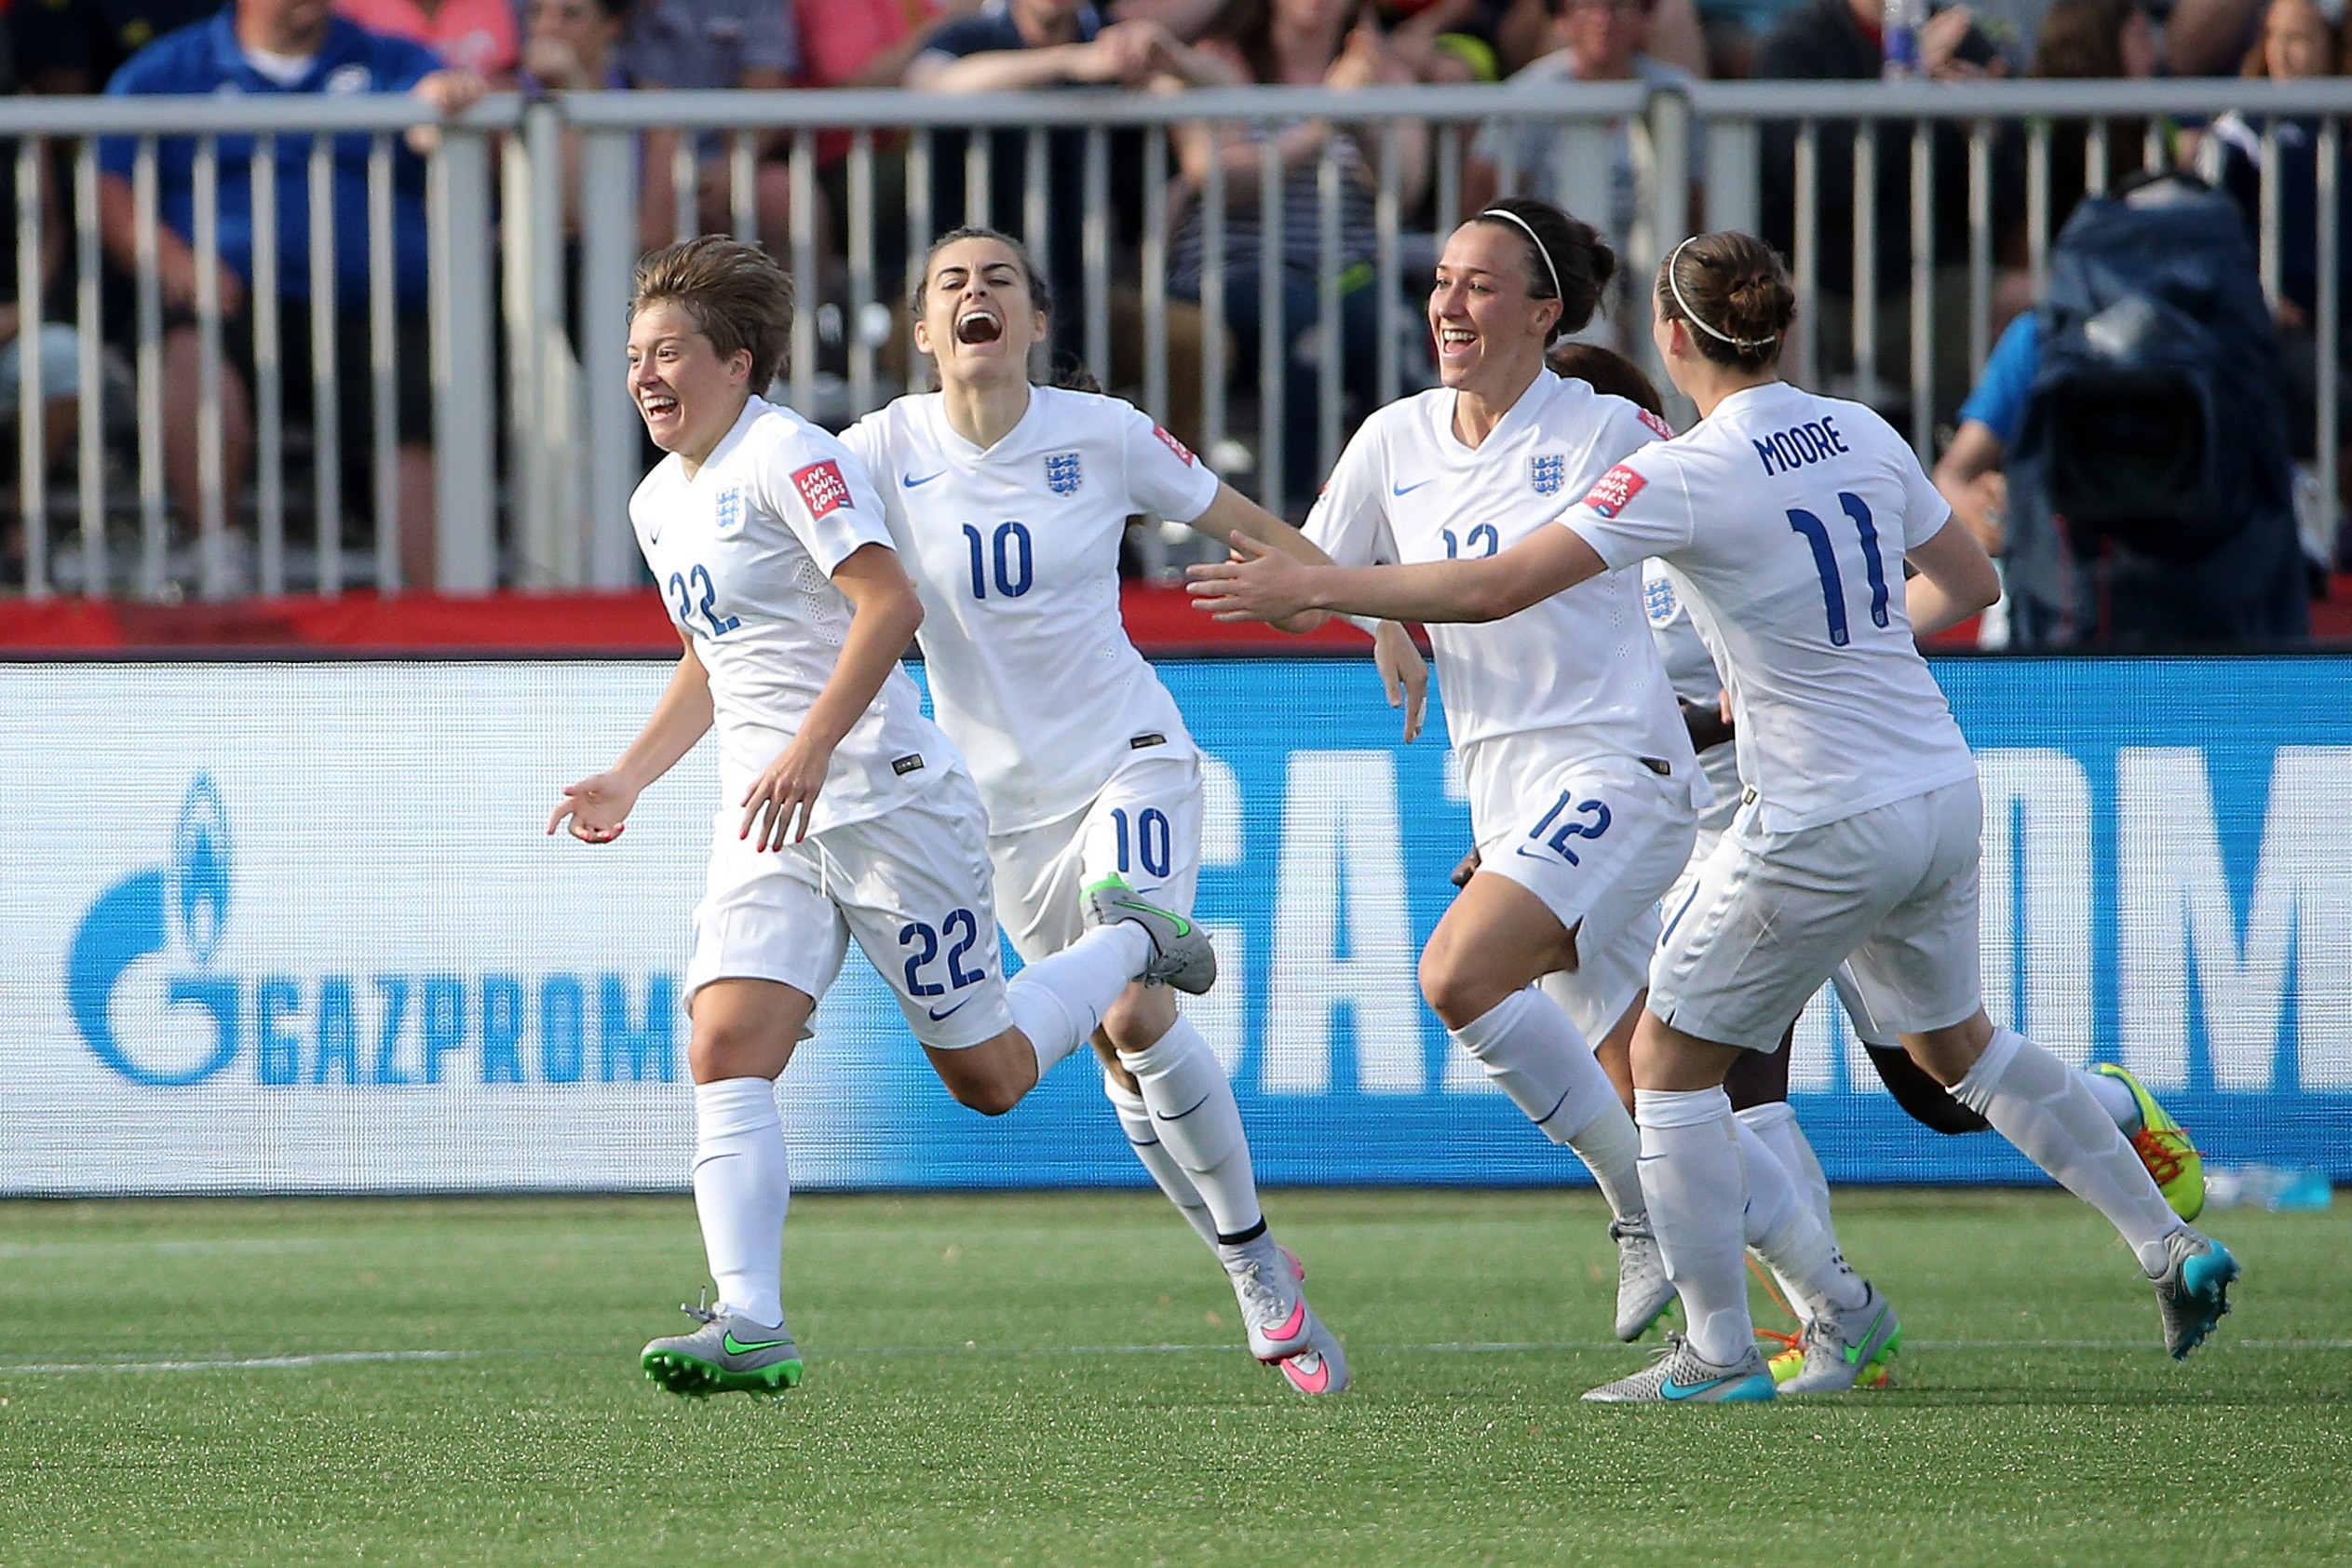 England celebrate scoring against Mexico at the Women's World Cup